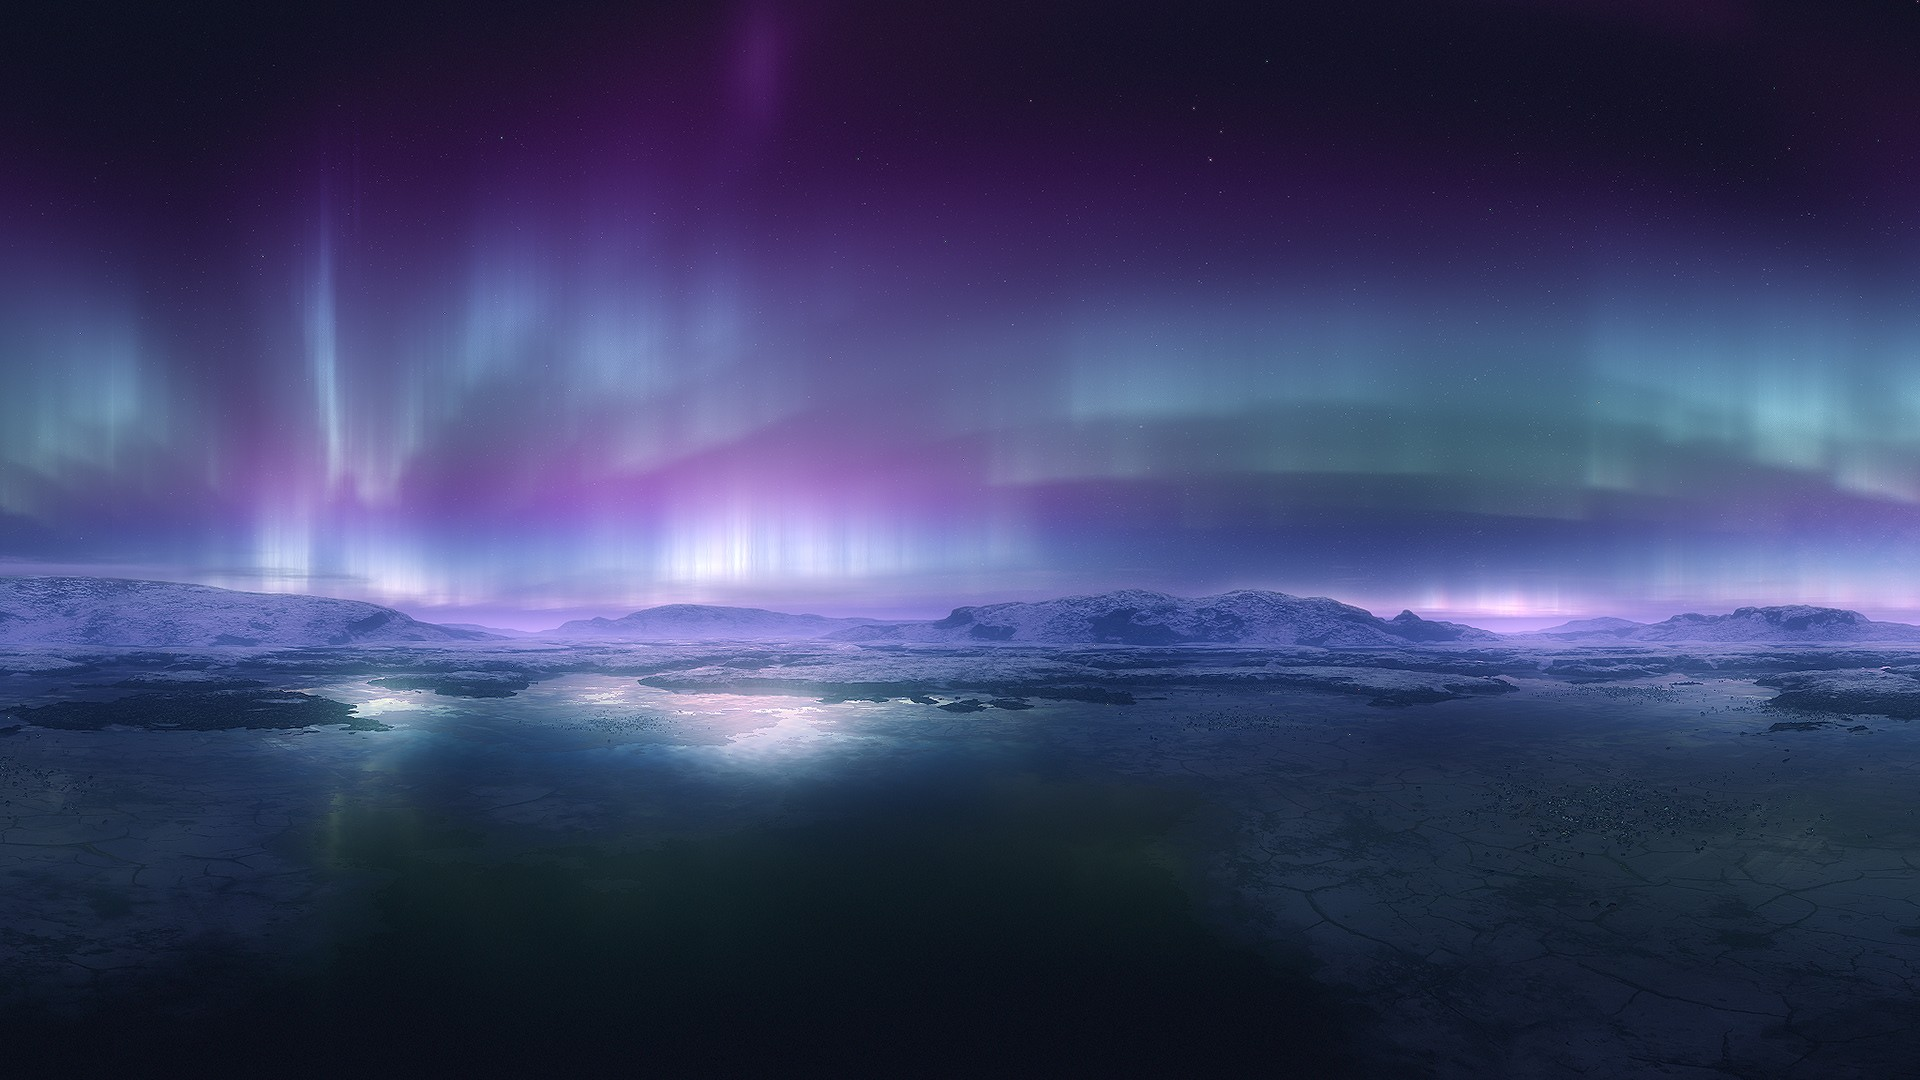 4k Wallpaper 3d 3840x2400 Norther Aurora Sky Wallpapers Hd Wallpapers Id 25027